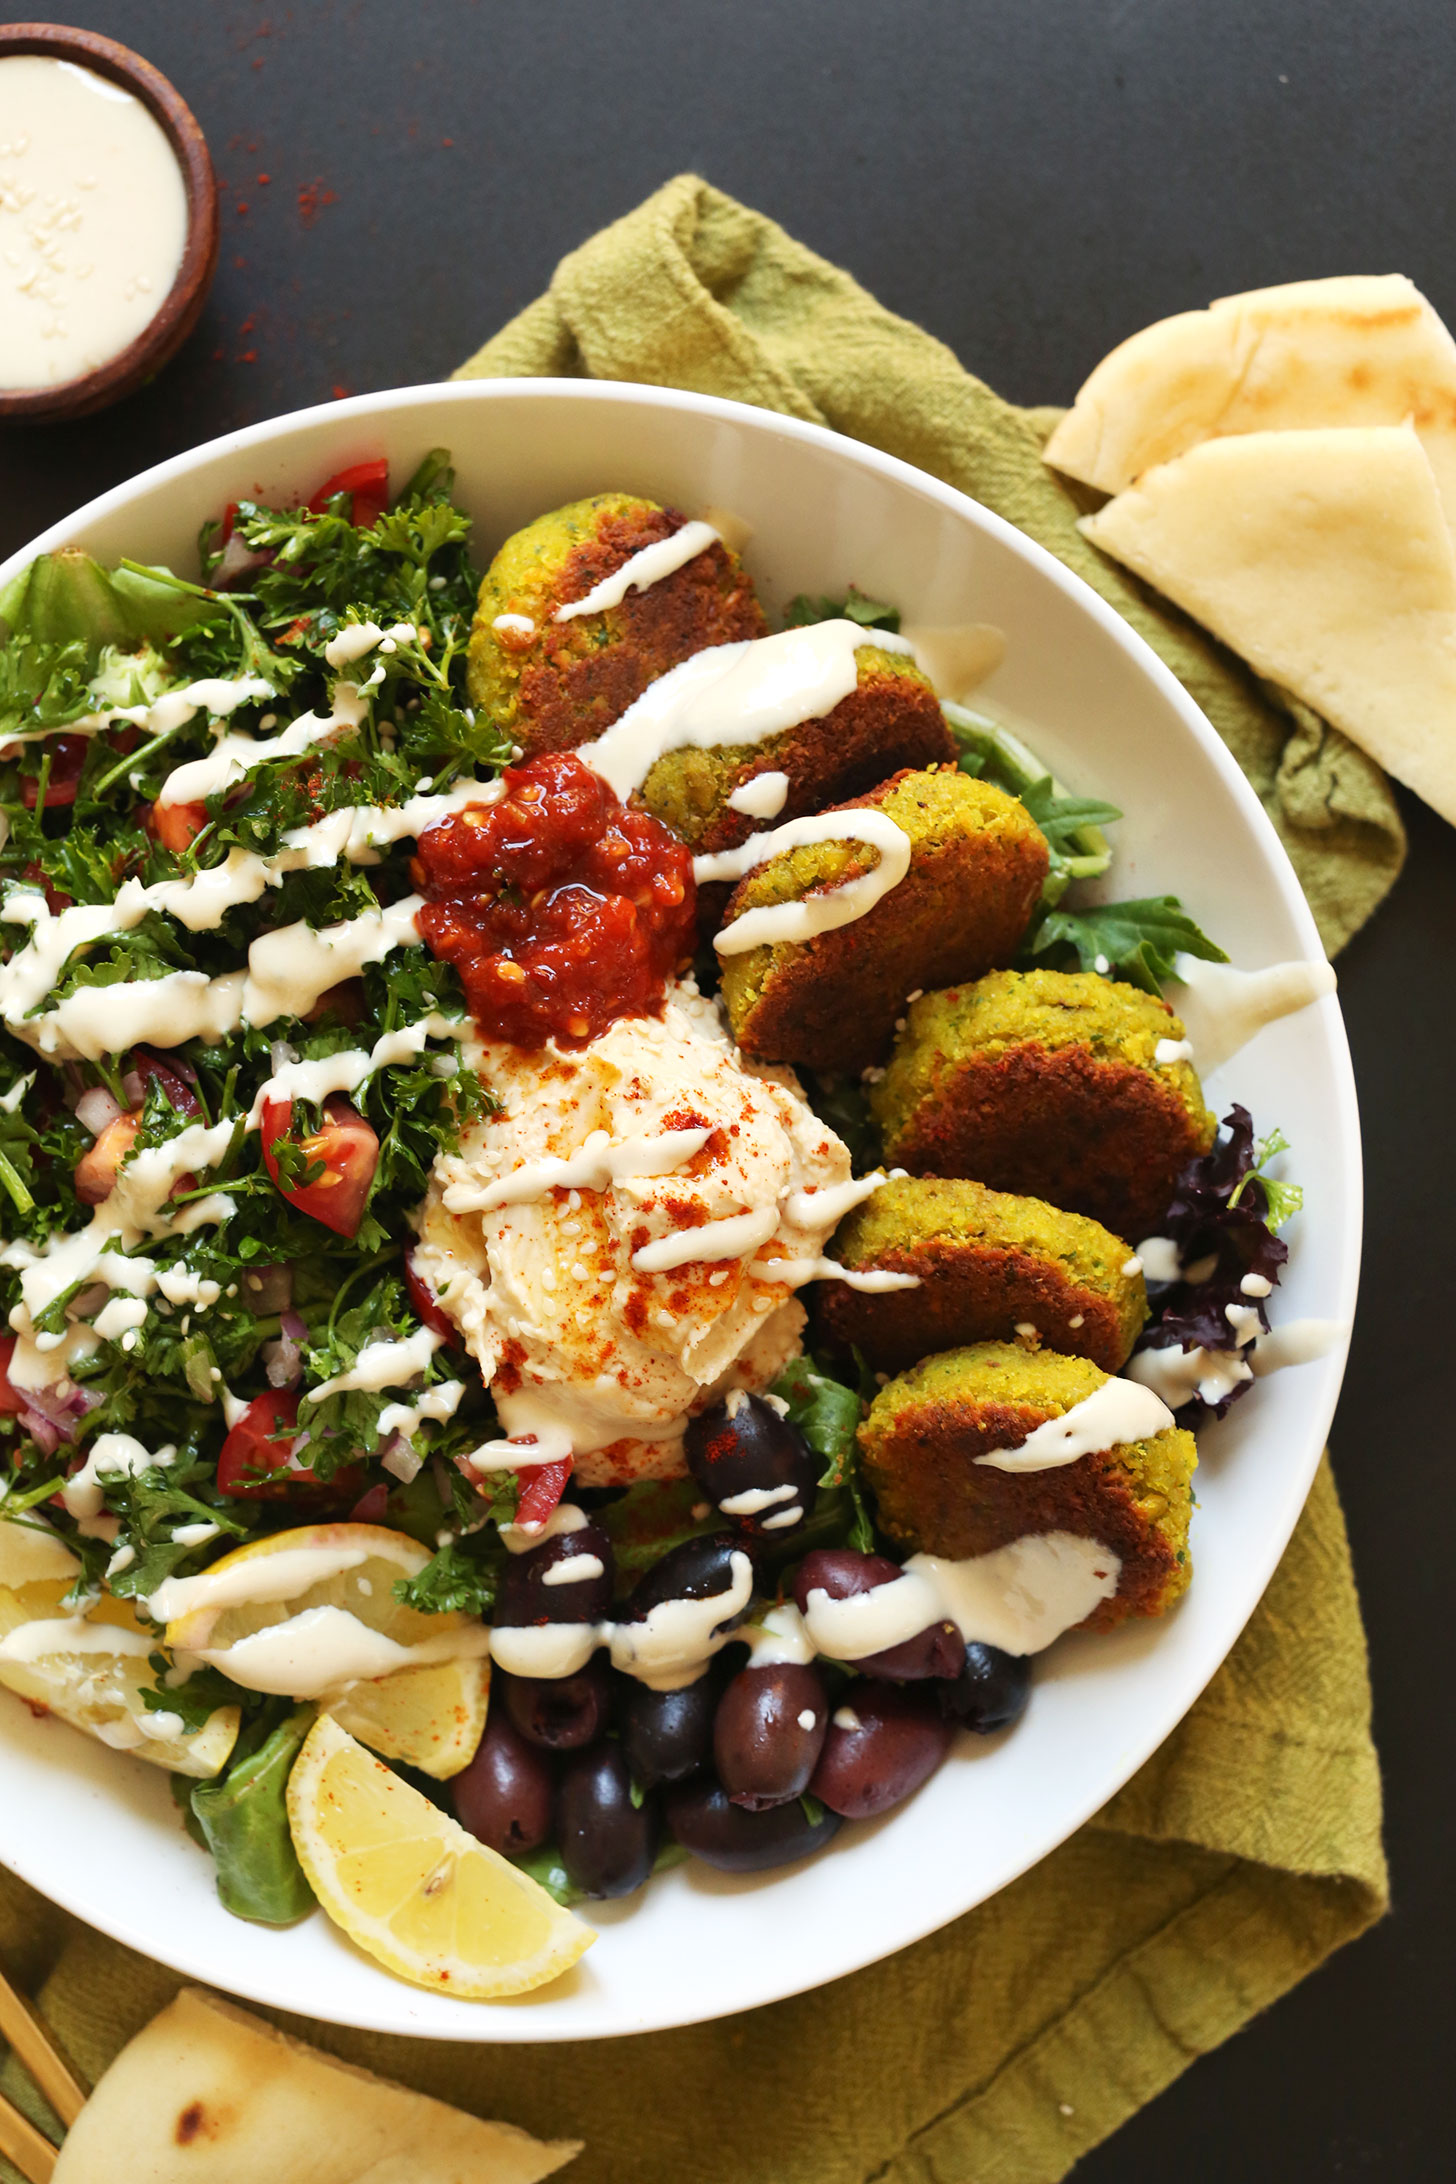 Serving of our vegan Mediterranean Bowl with hummus, falafel, tahini sauce, olives, and pita